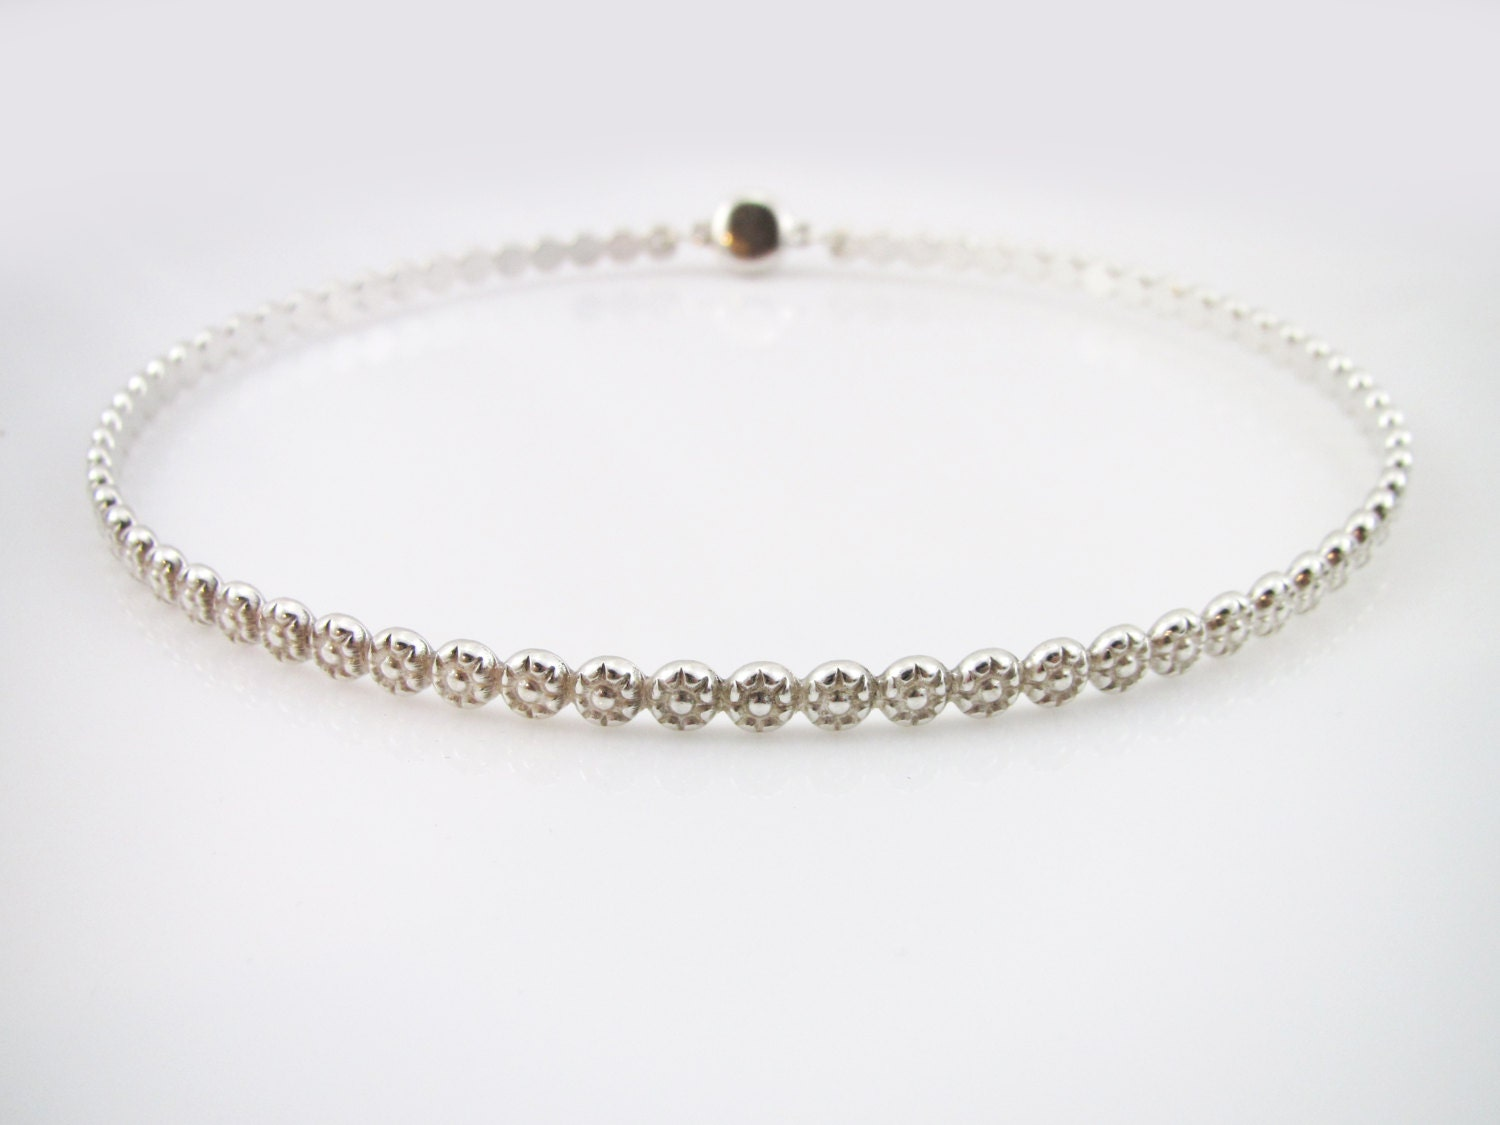 Sterling Silver Discreet Slave Day Collar Daisy Berry